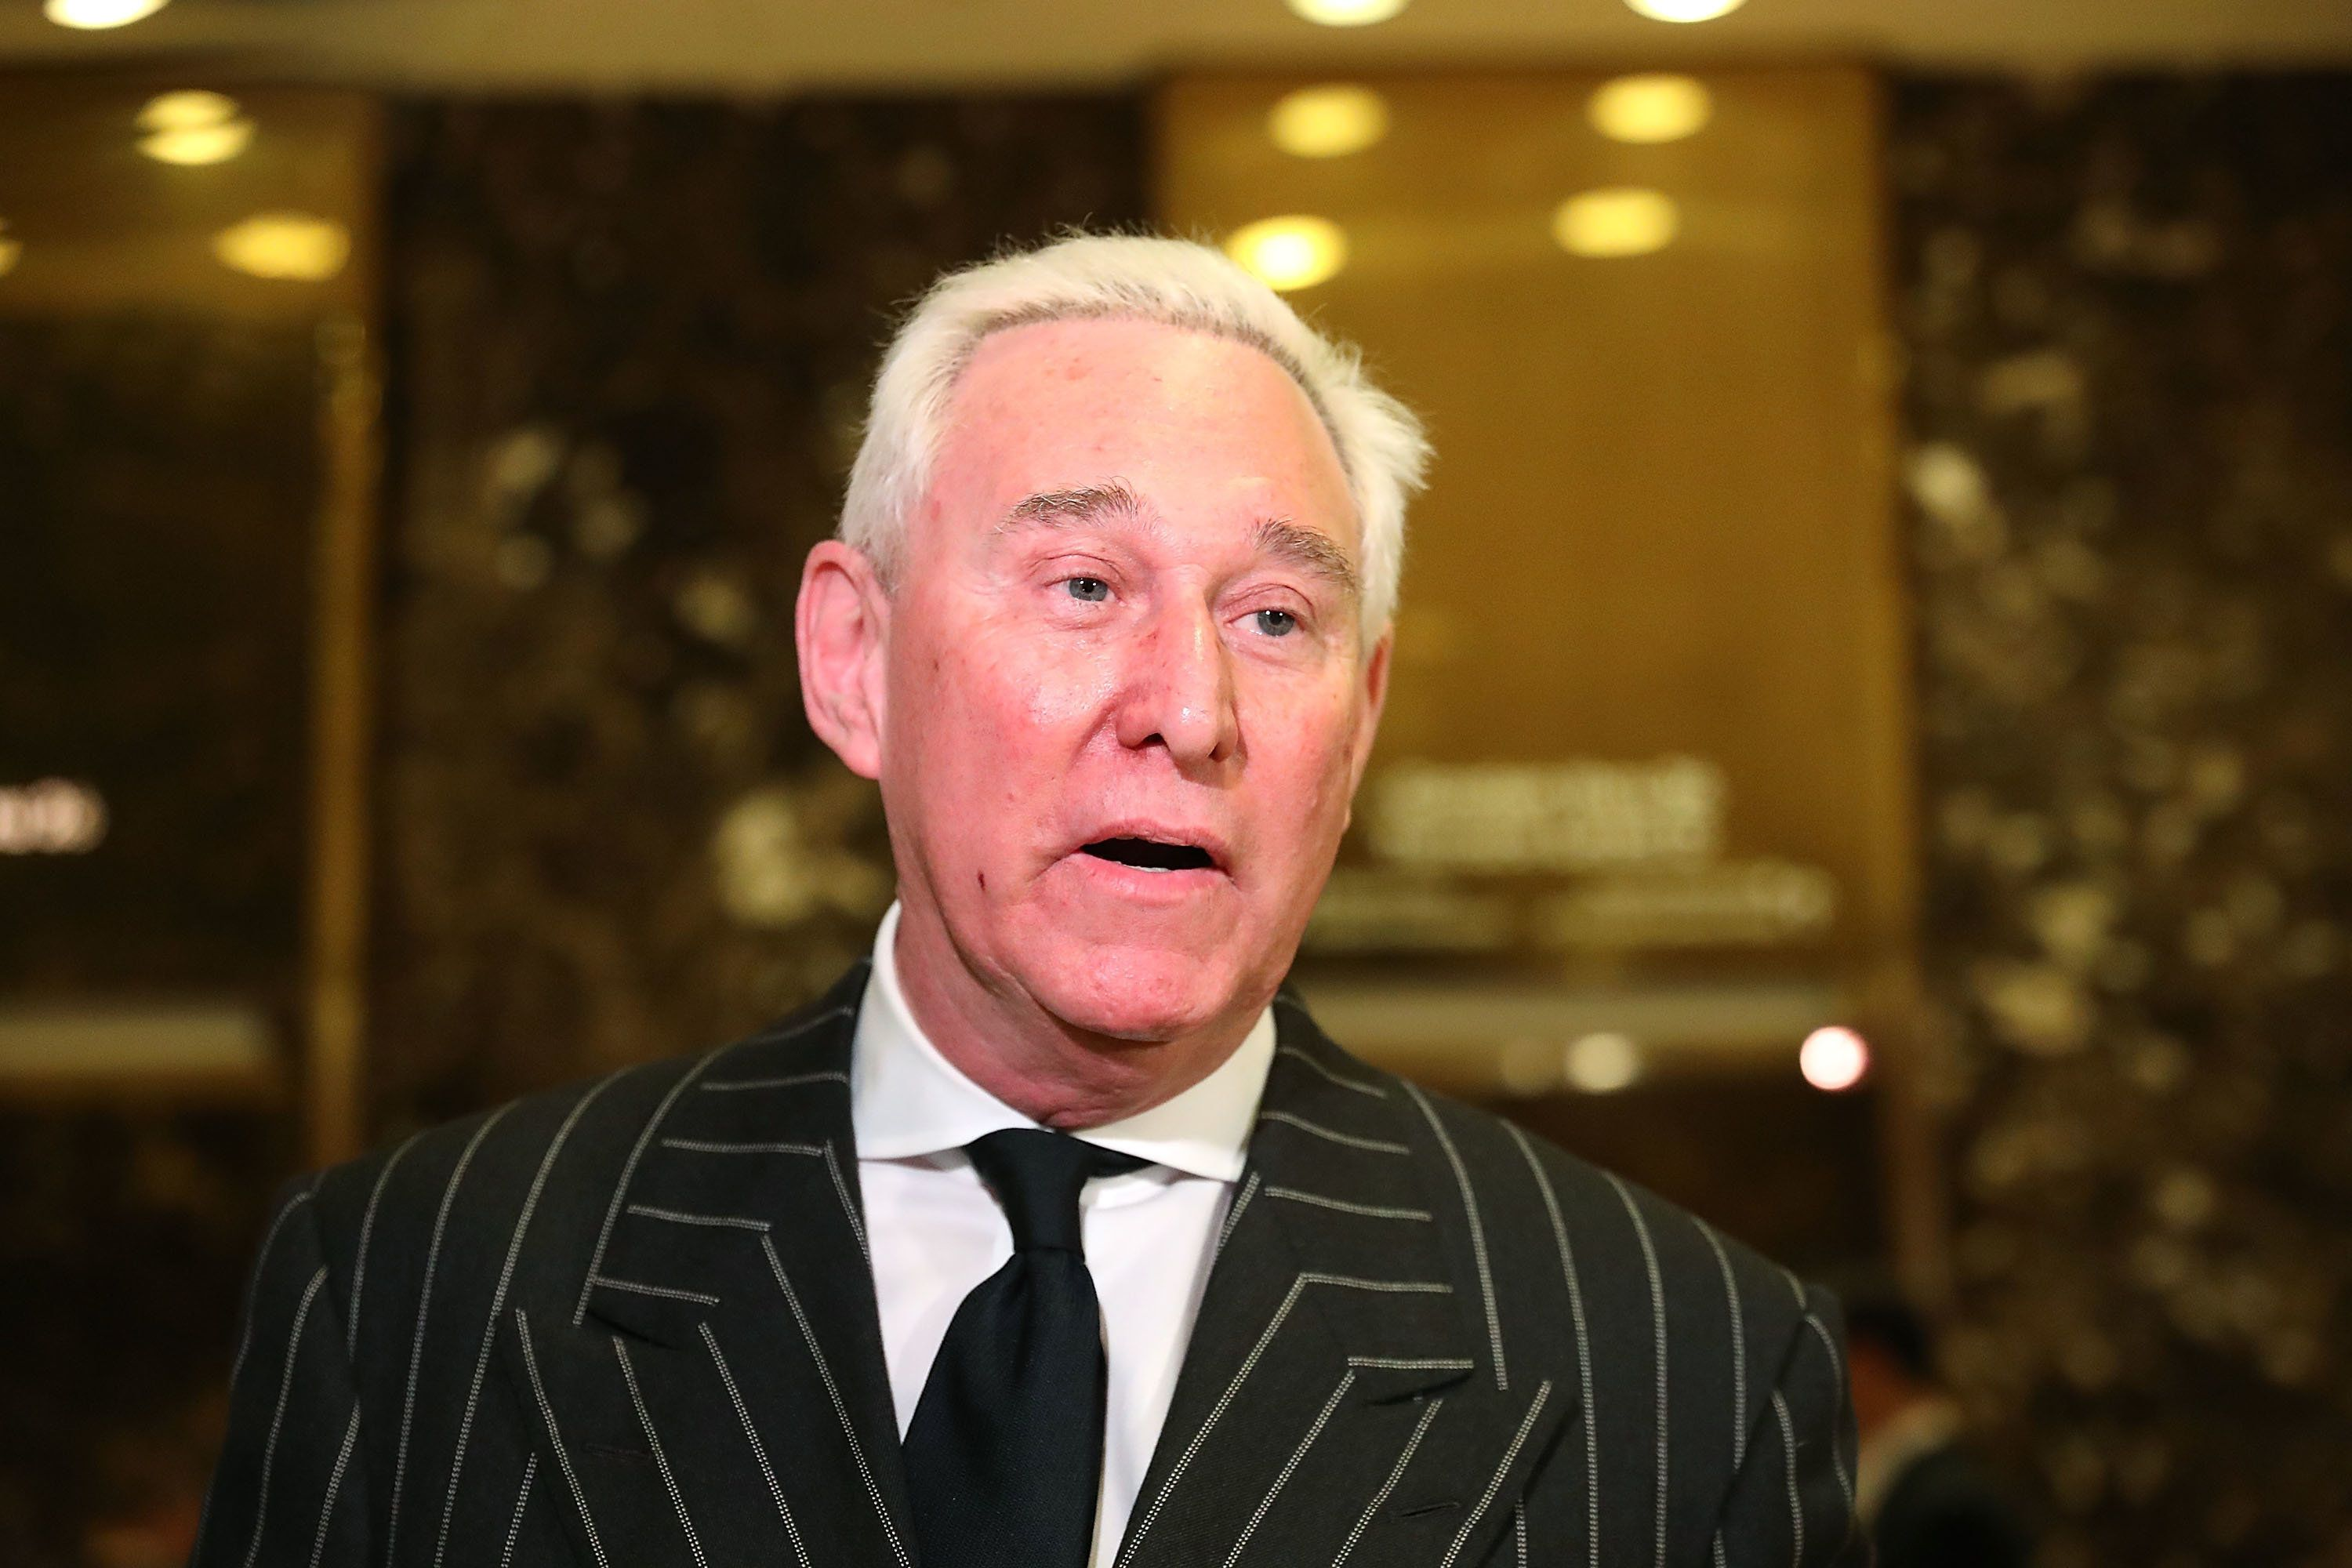 NEW YORK, NY - DECEMBER 06:  Roger Stone speaks to the media at Trump Tower on December 6, 2016 in New York City. Potential members of President-elect Donald Trump's cabinet have been meeting with him and his transition team over the last few weeks.  (Photo by Spencer Platt/Getty Images)